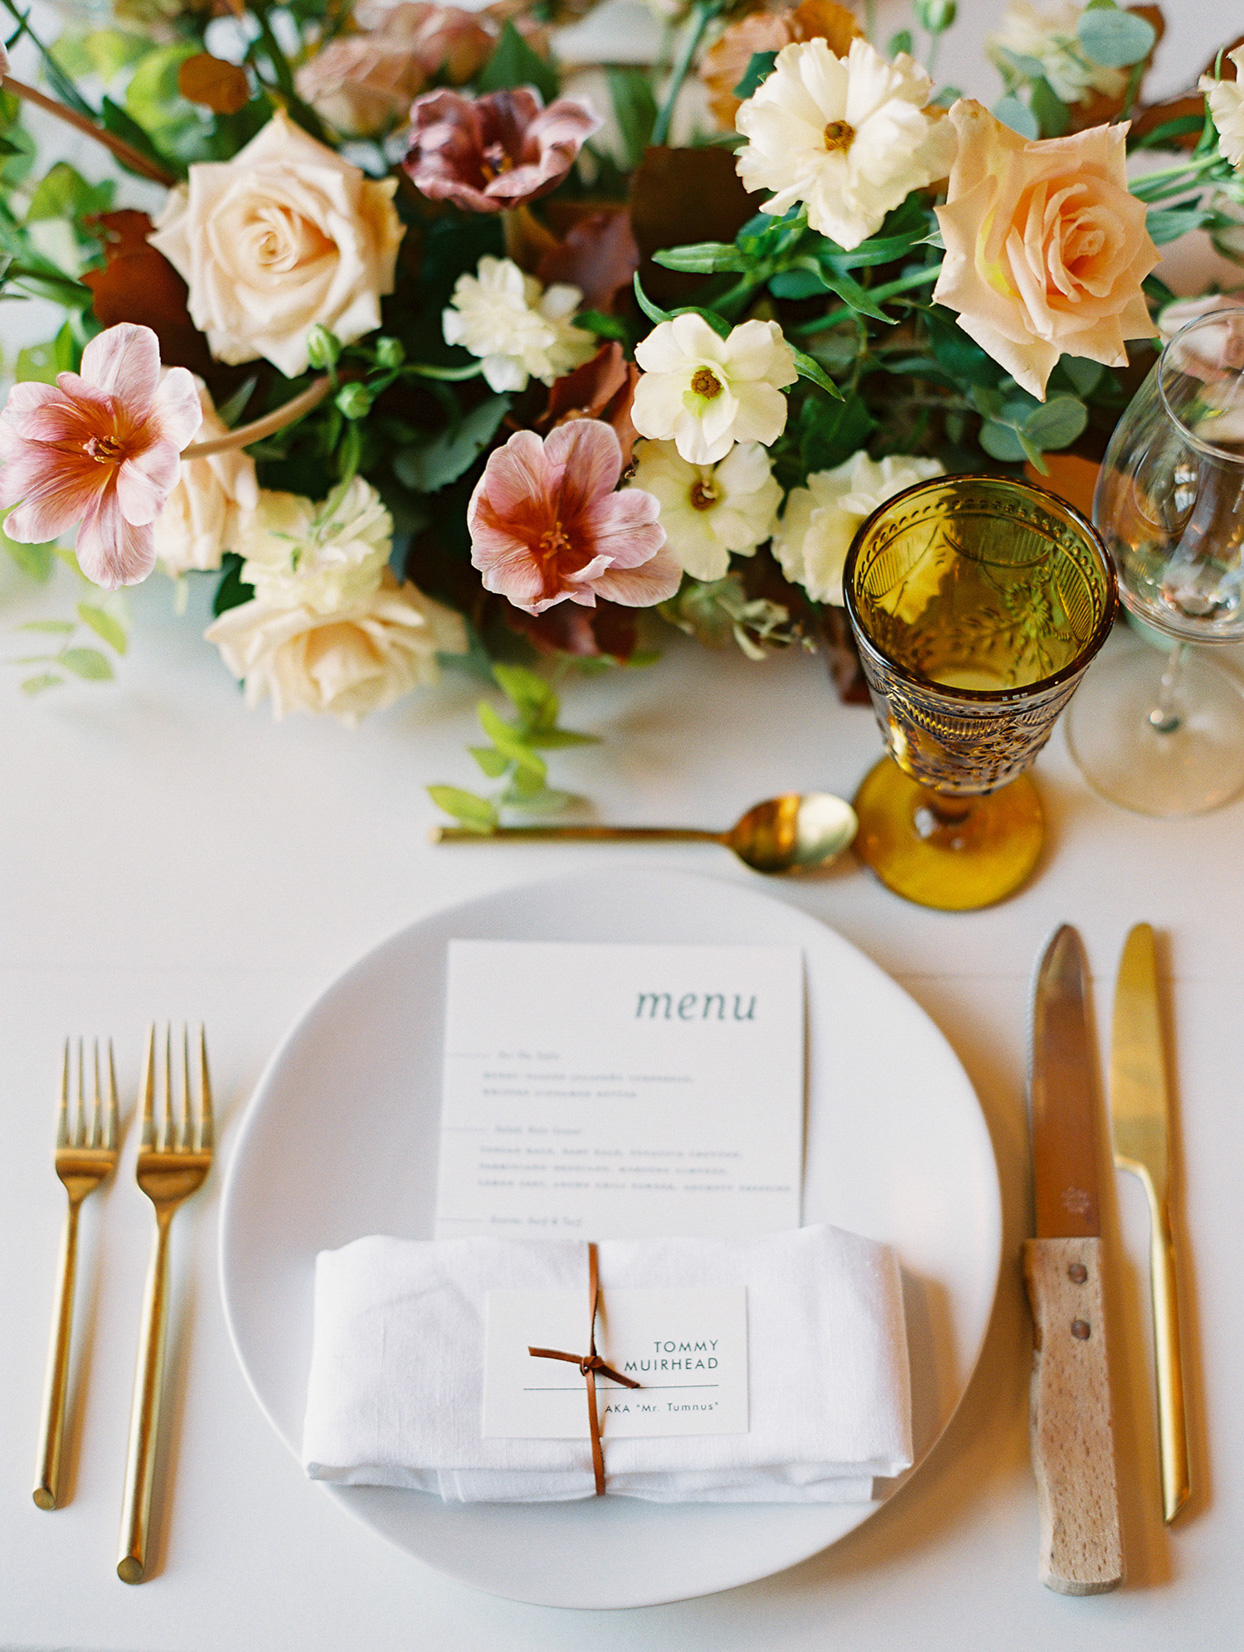 dinner menu with table setting and place card